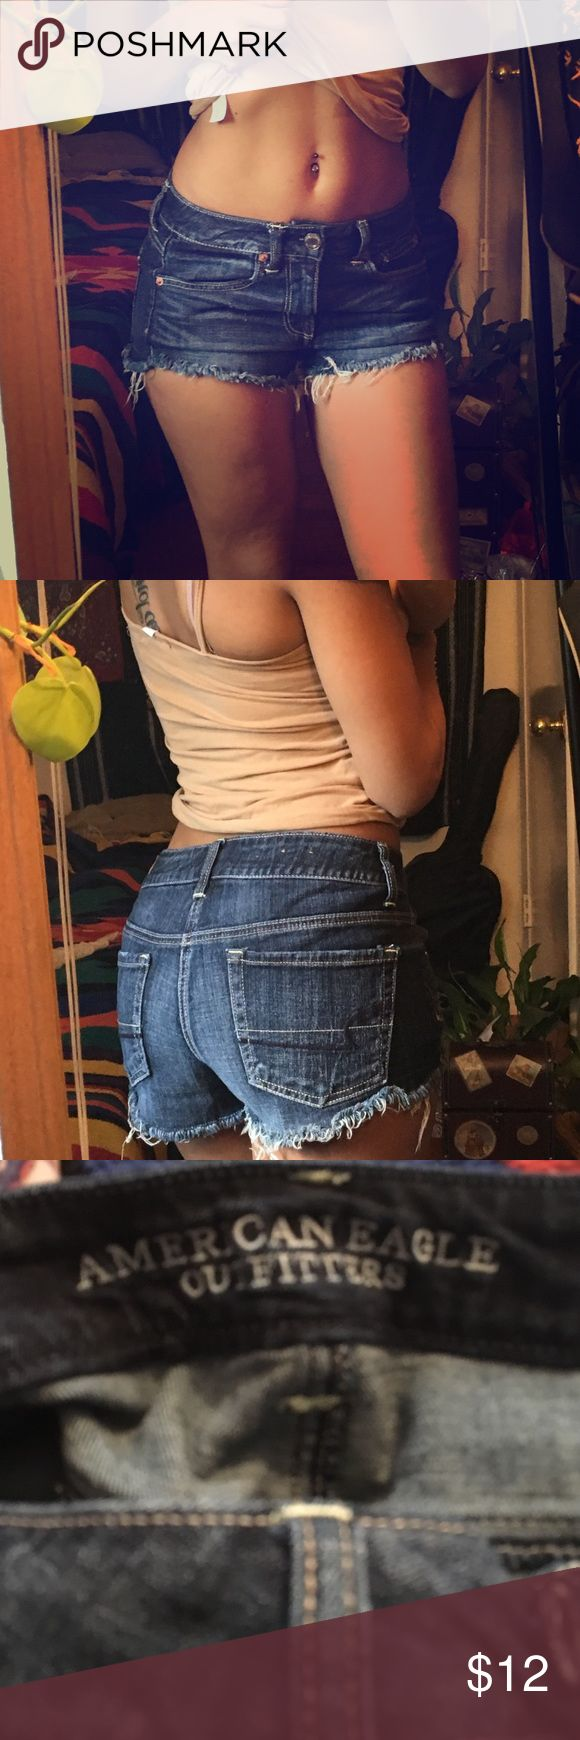 American eagle outfitters shorts No flaws size 4 American Eagle Outfitters Shorts